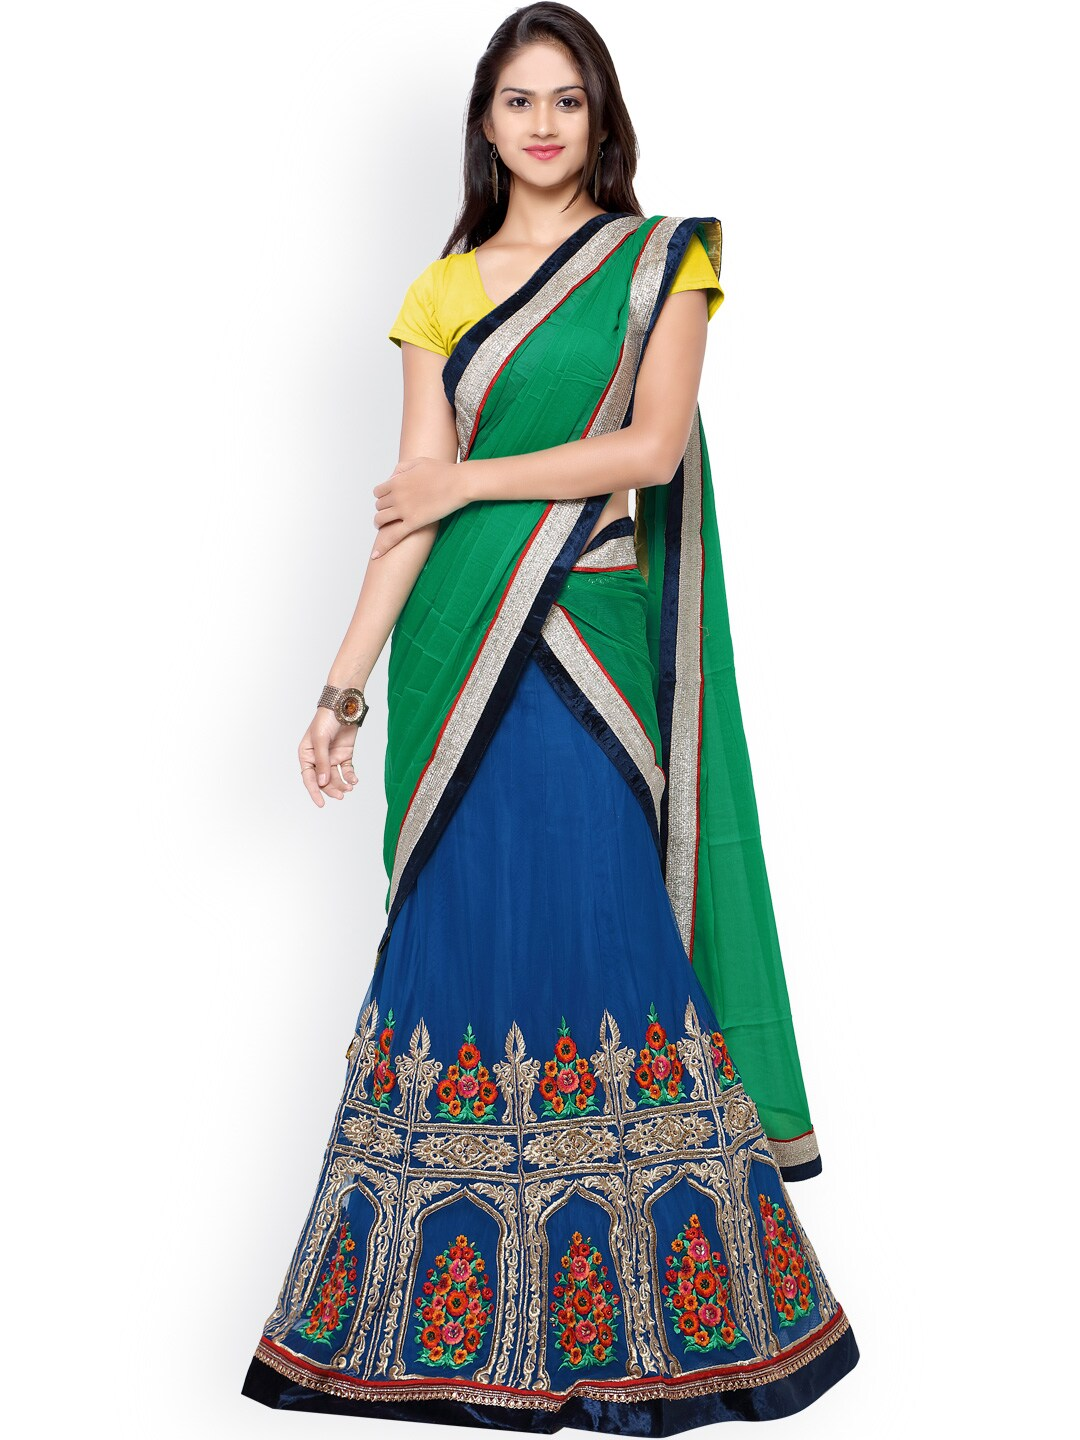 Touch Trends Yellow & Blue Embroidered Net Semi-Stitched Lehenga Choli with Dupatta image